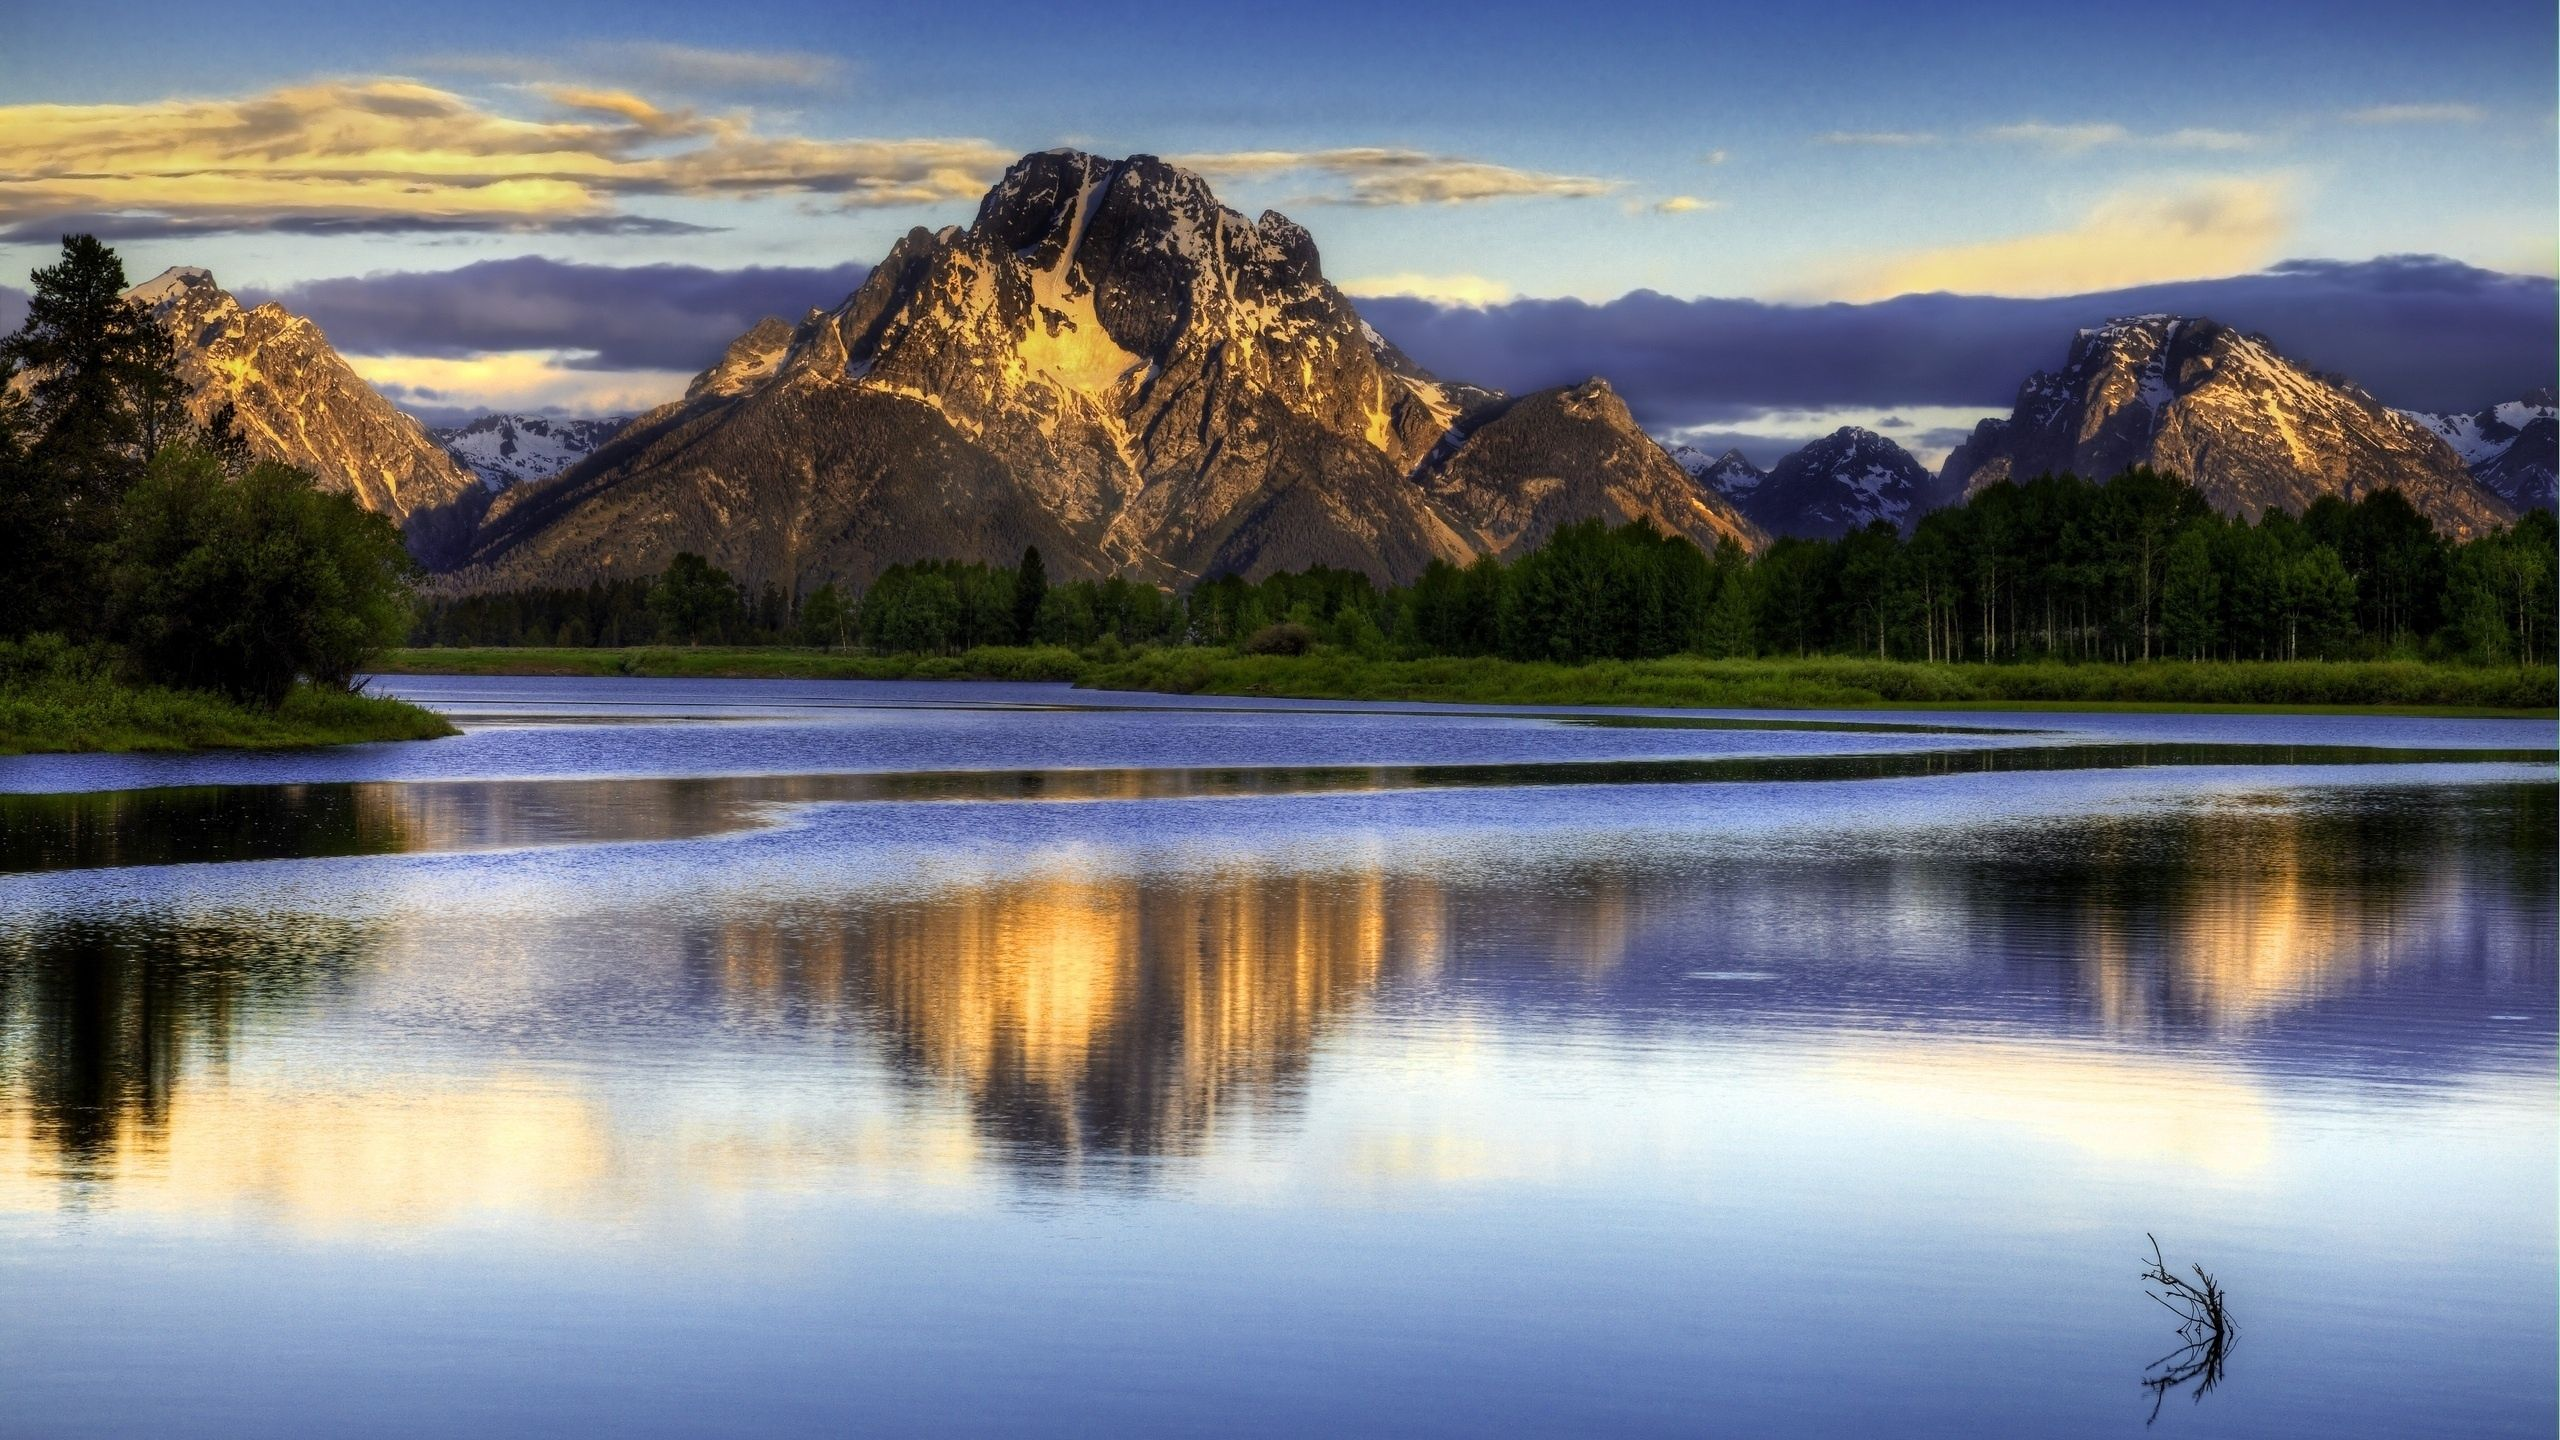 2560x1440 Wallpaper landscape, mountains, lake, surface of